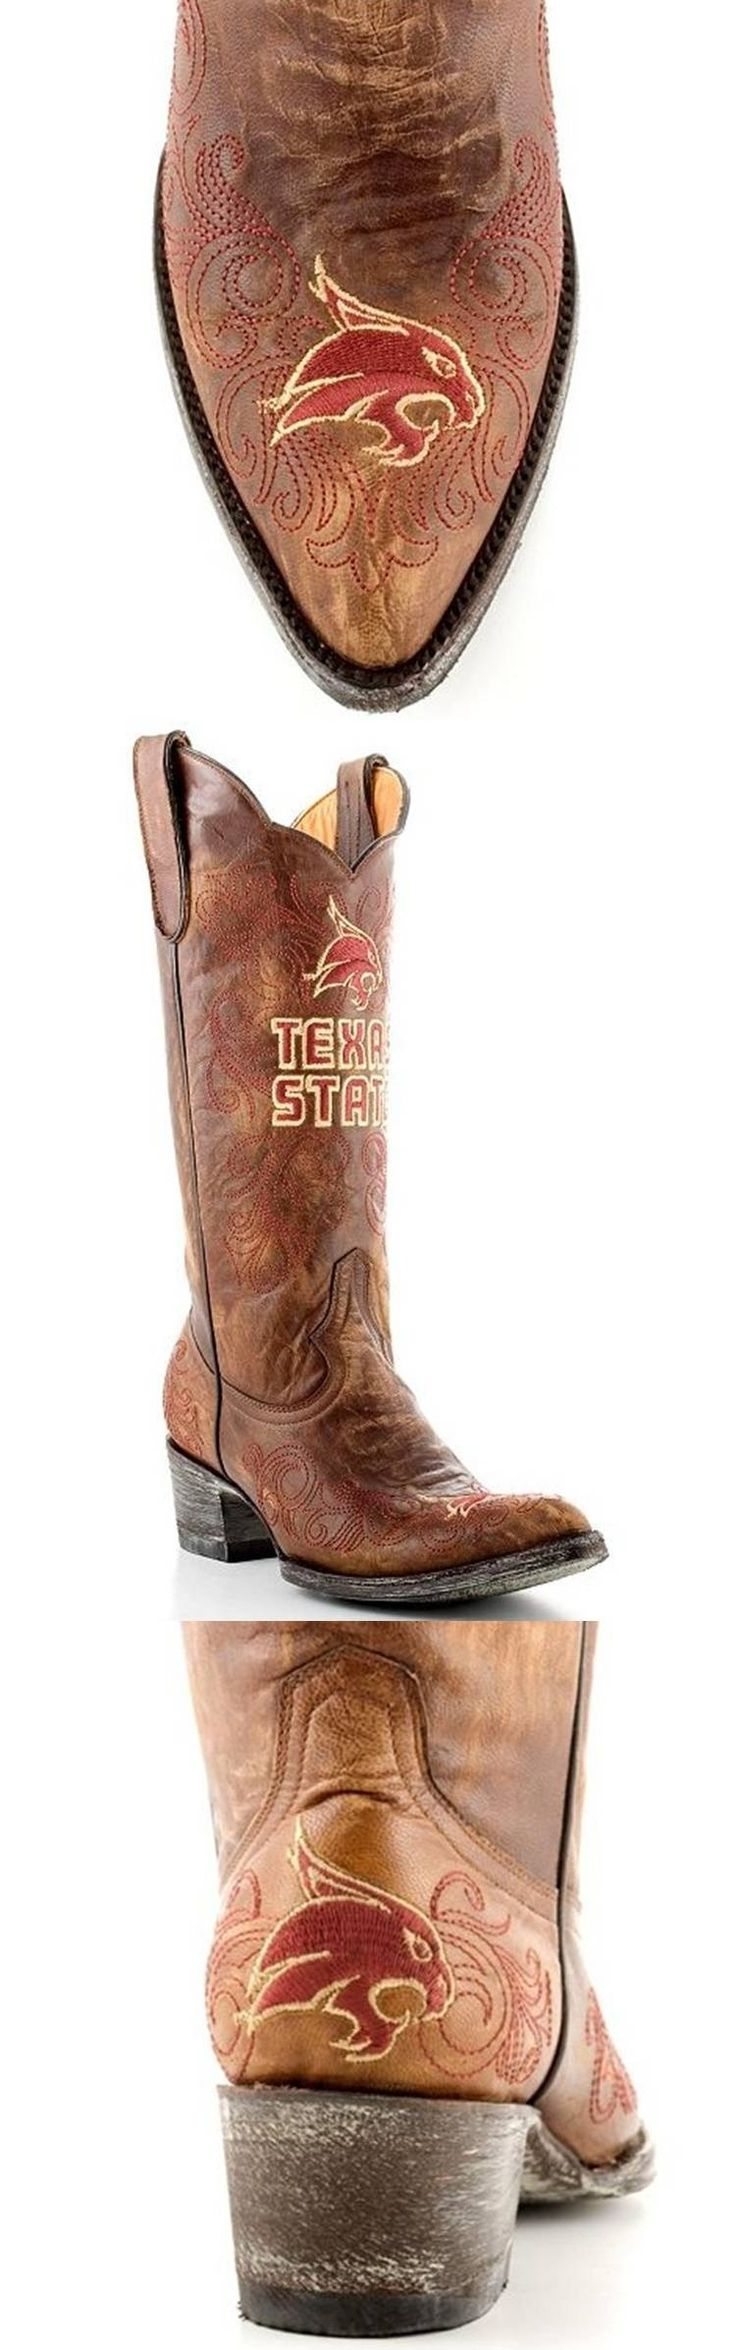 Texas State University cowboy boots. These would be the only cowboy boots I would consider owning.